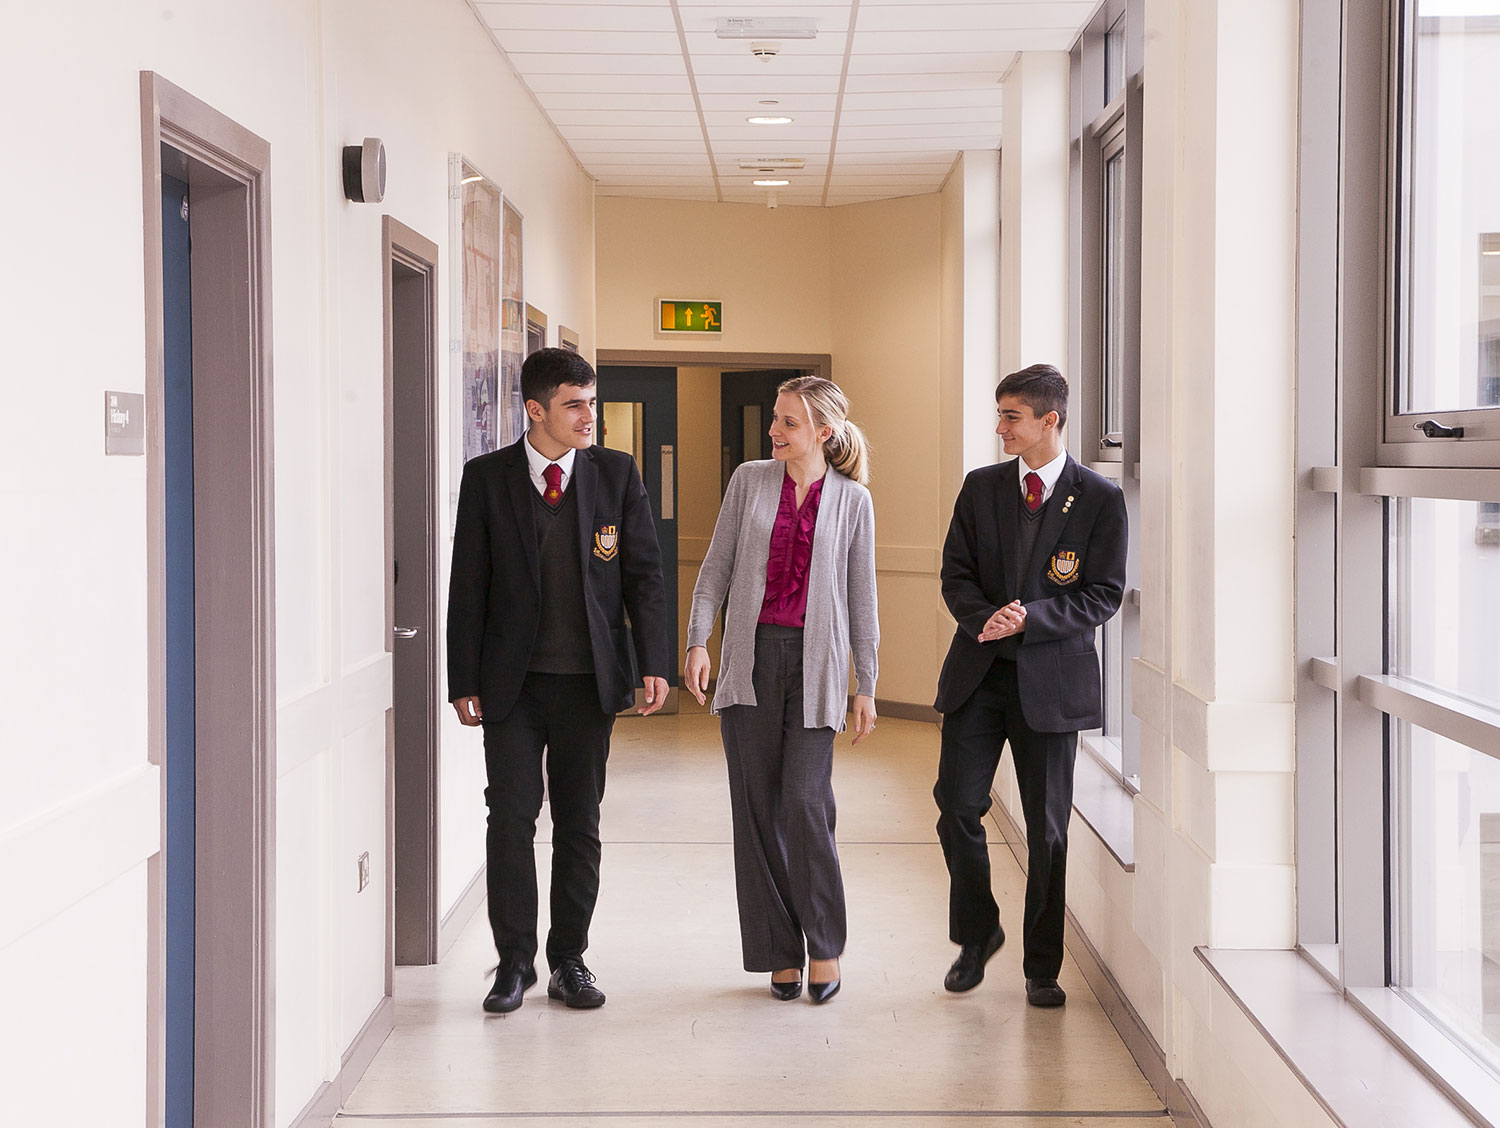 Students-with-female-teacher-corridor-happy-1600-2.jpg